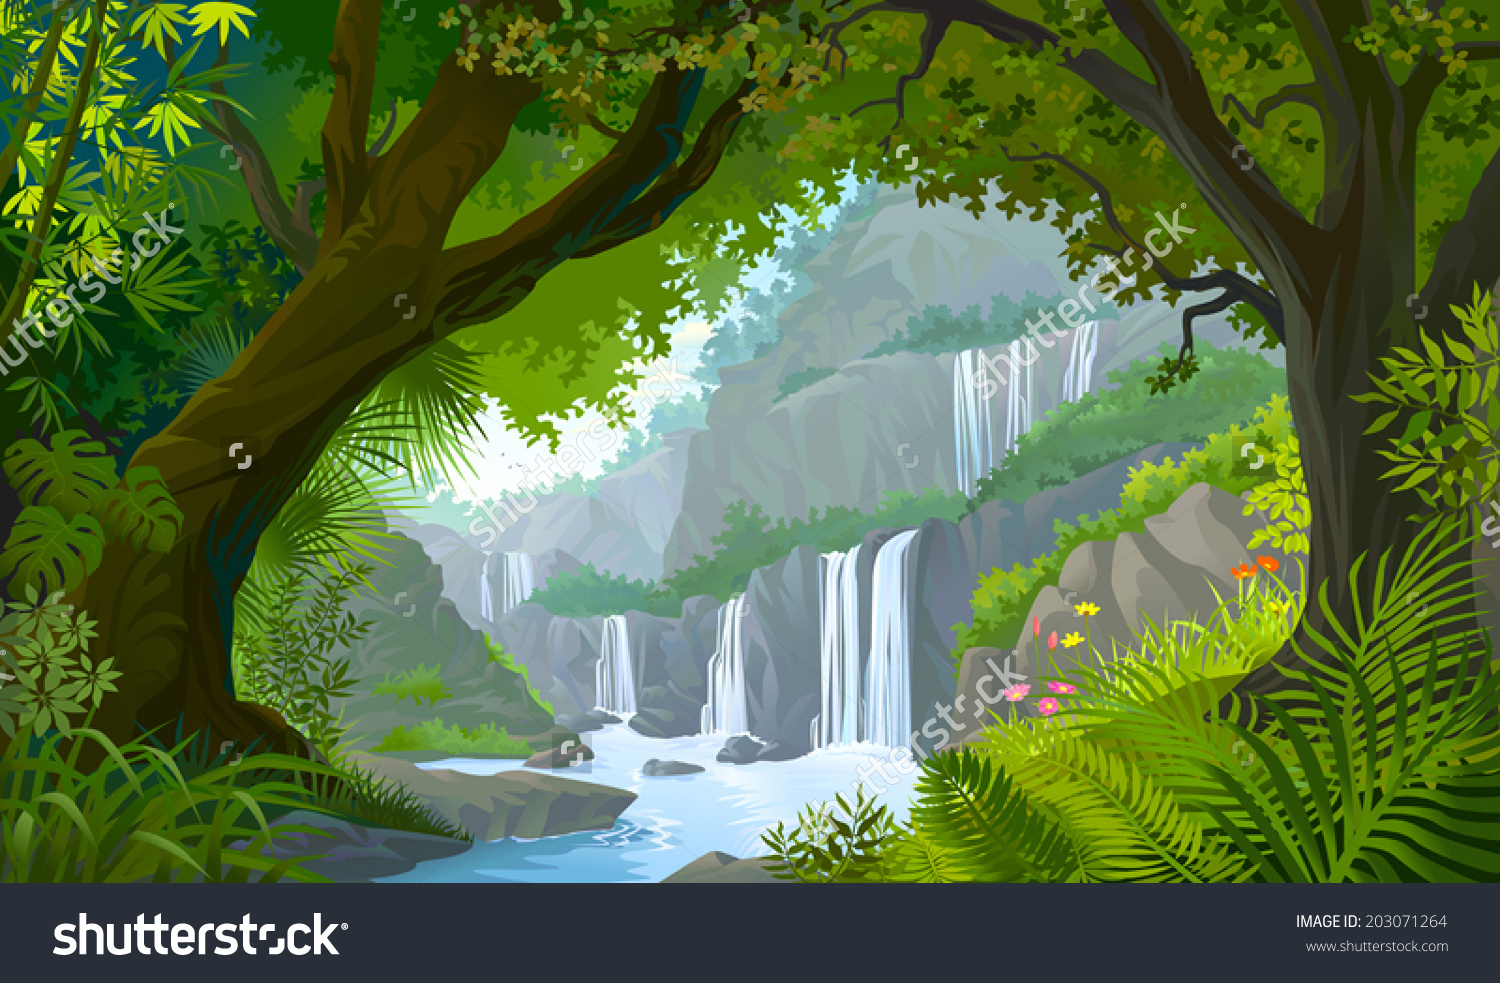 Natural forest clipart.